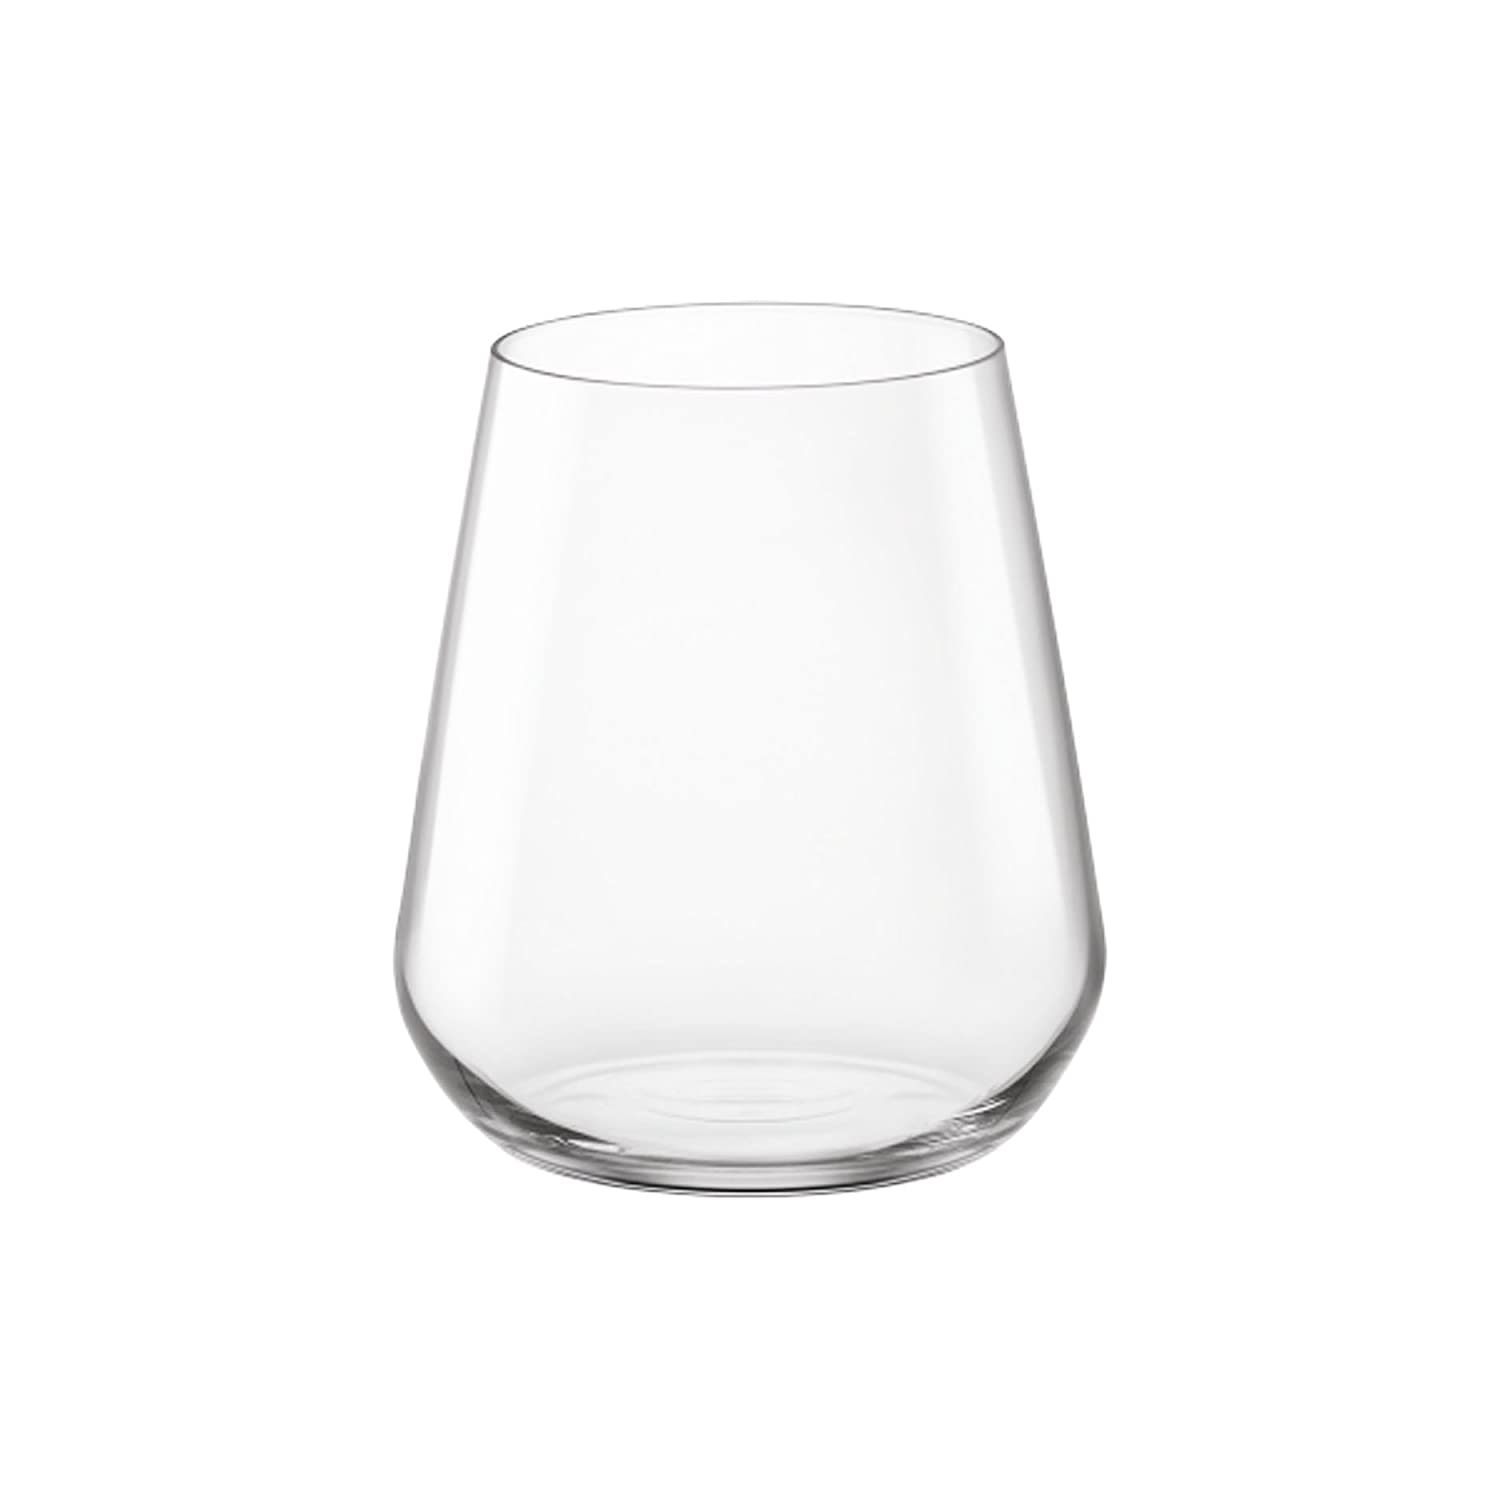 Bormioli Rocco InAlto Set of 6 D.O.F. Glass Water Tumblers 0.45 cl 3.65750 1334544